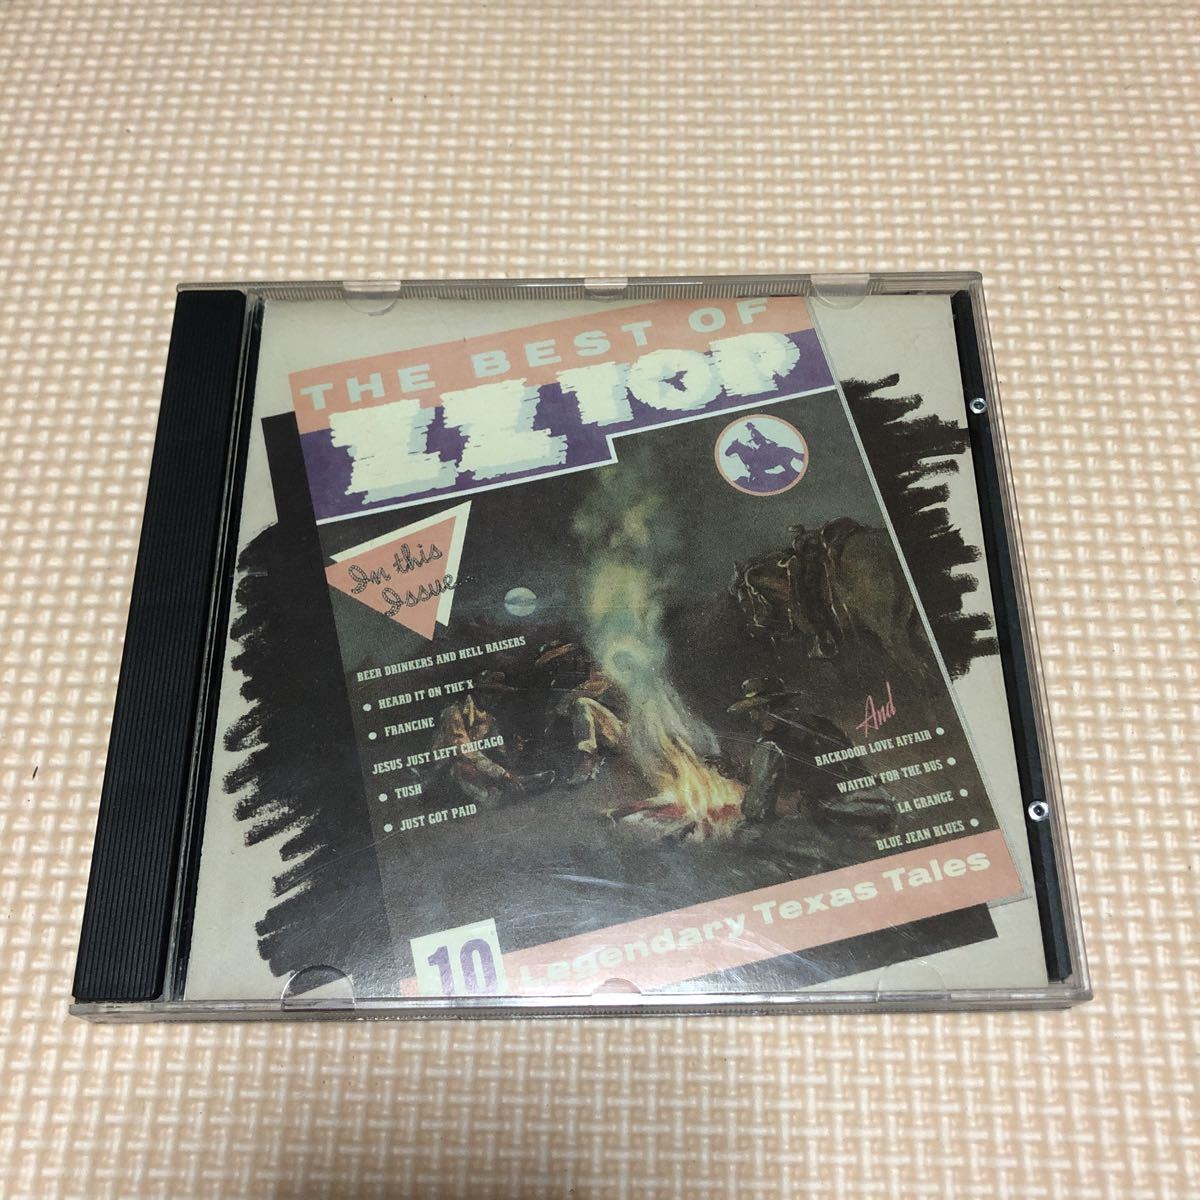 ZZ Top The Best Of ZZ Top USA盤CD